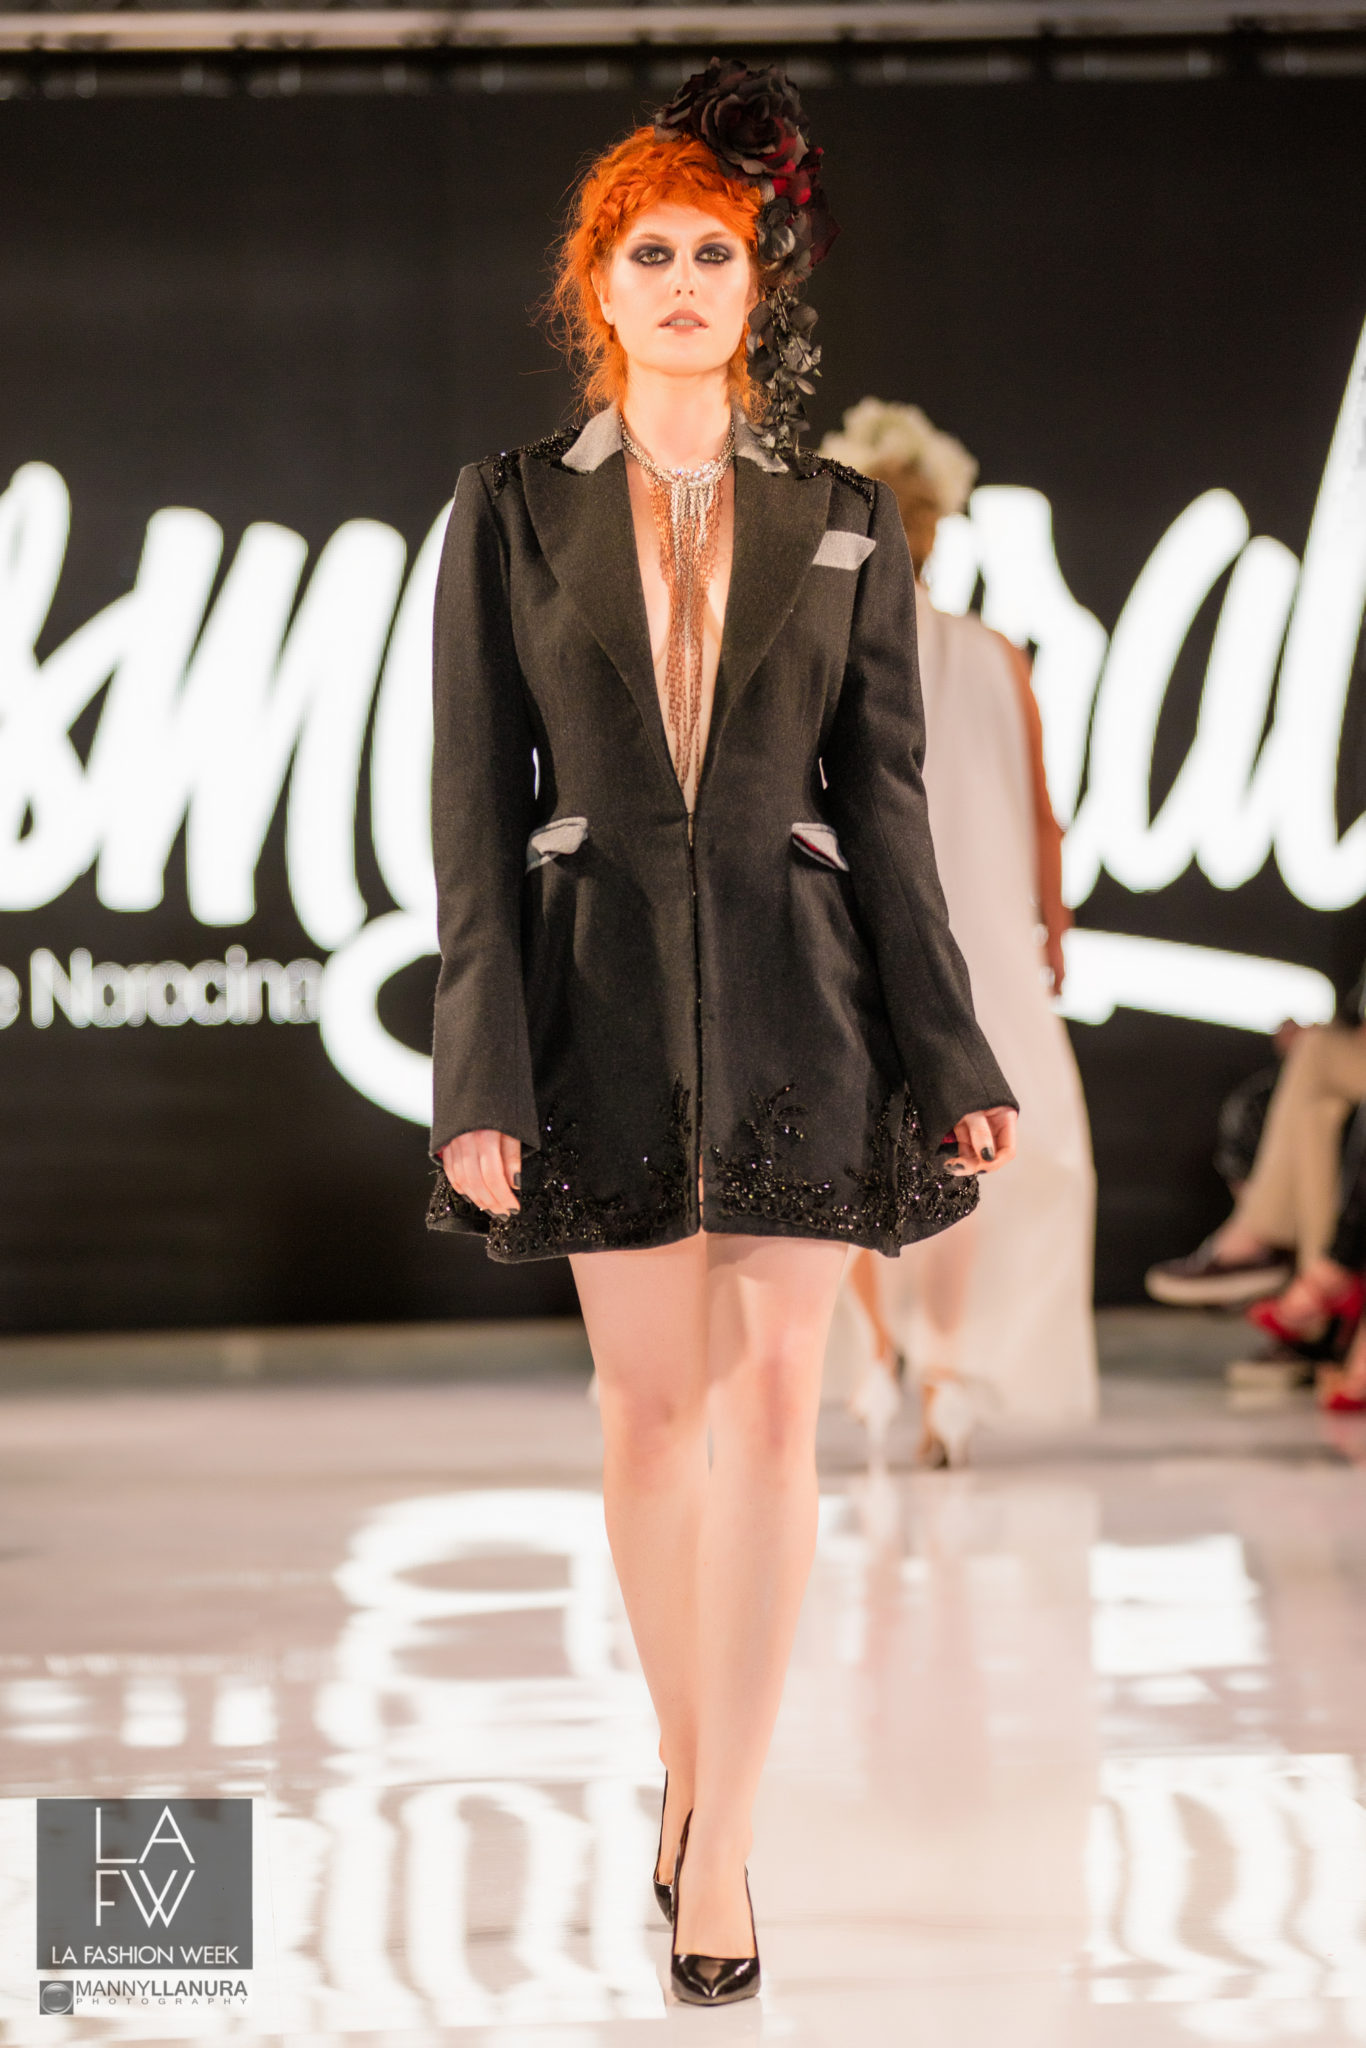 Cosmogyral runway LAFW LA Fashion Week 2016